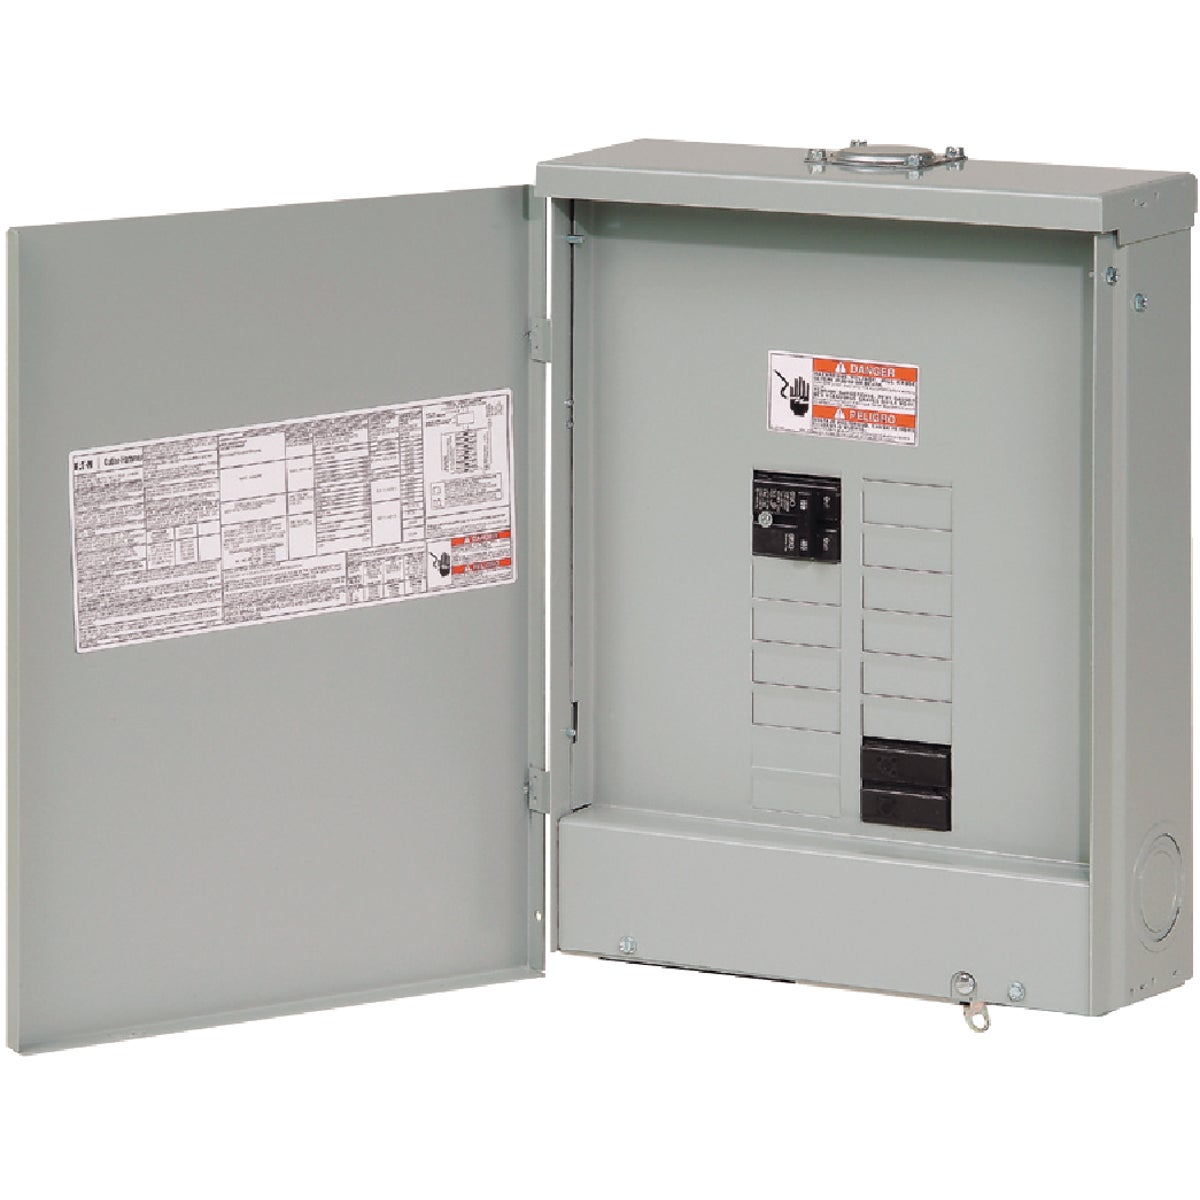 100A LOAD CENTER - BR1020B100RF by Eaton Corporation